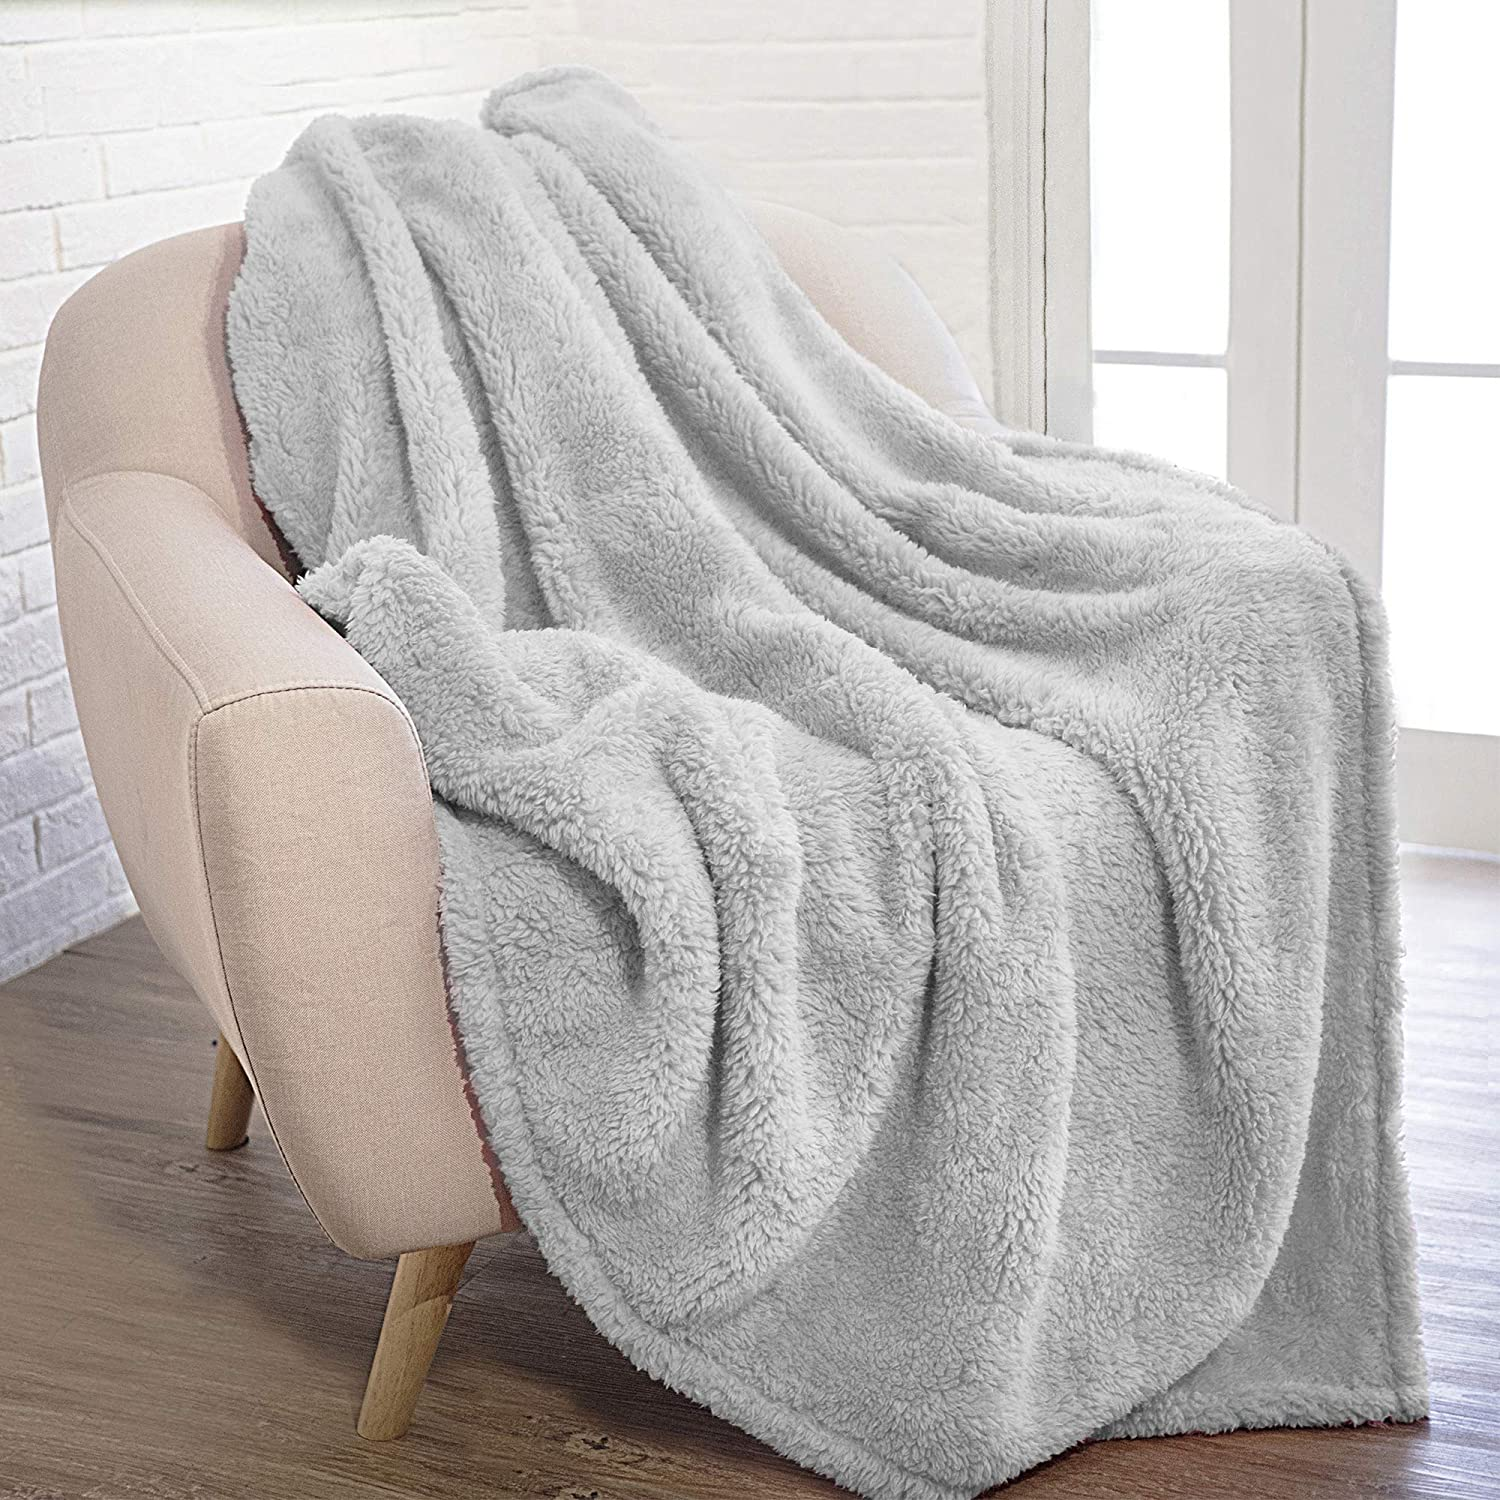 Pavilia Plush Sherpa Throw Blanket For Couch Sofa Fluffy Microfiber Fleece Throw Soft Fuzzy Cozy Lightweight Solid Light Gray Blanket 50 X 60 Inches Amazon Ca Home Kitchen